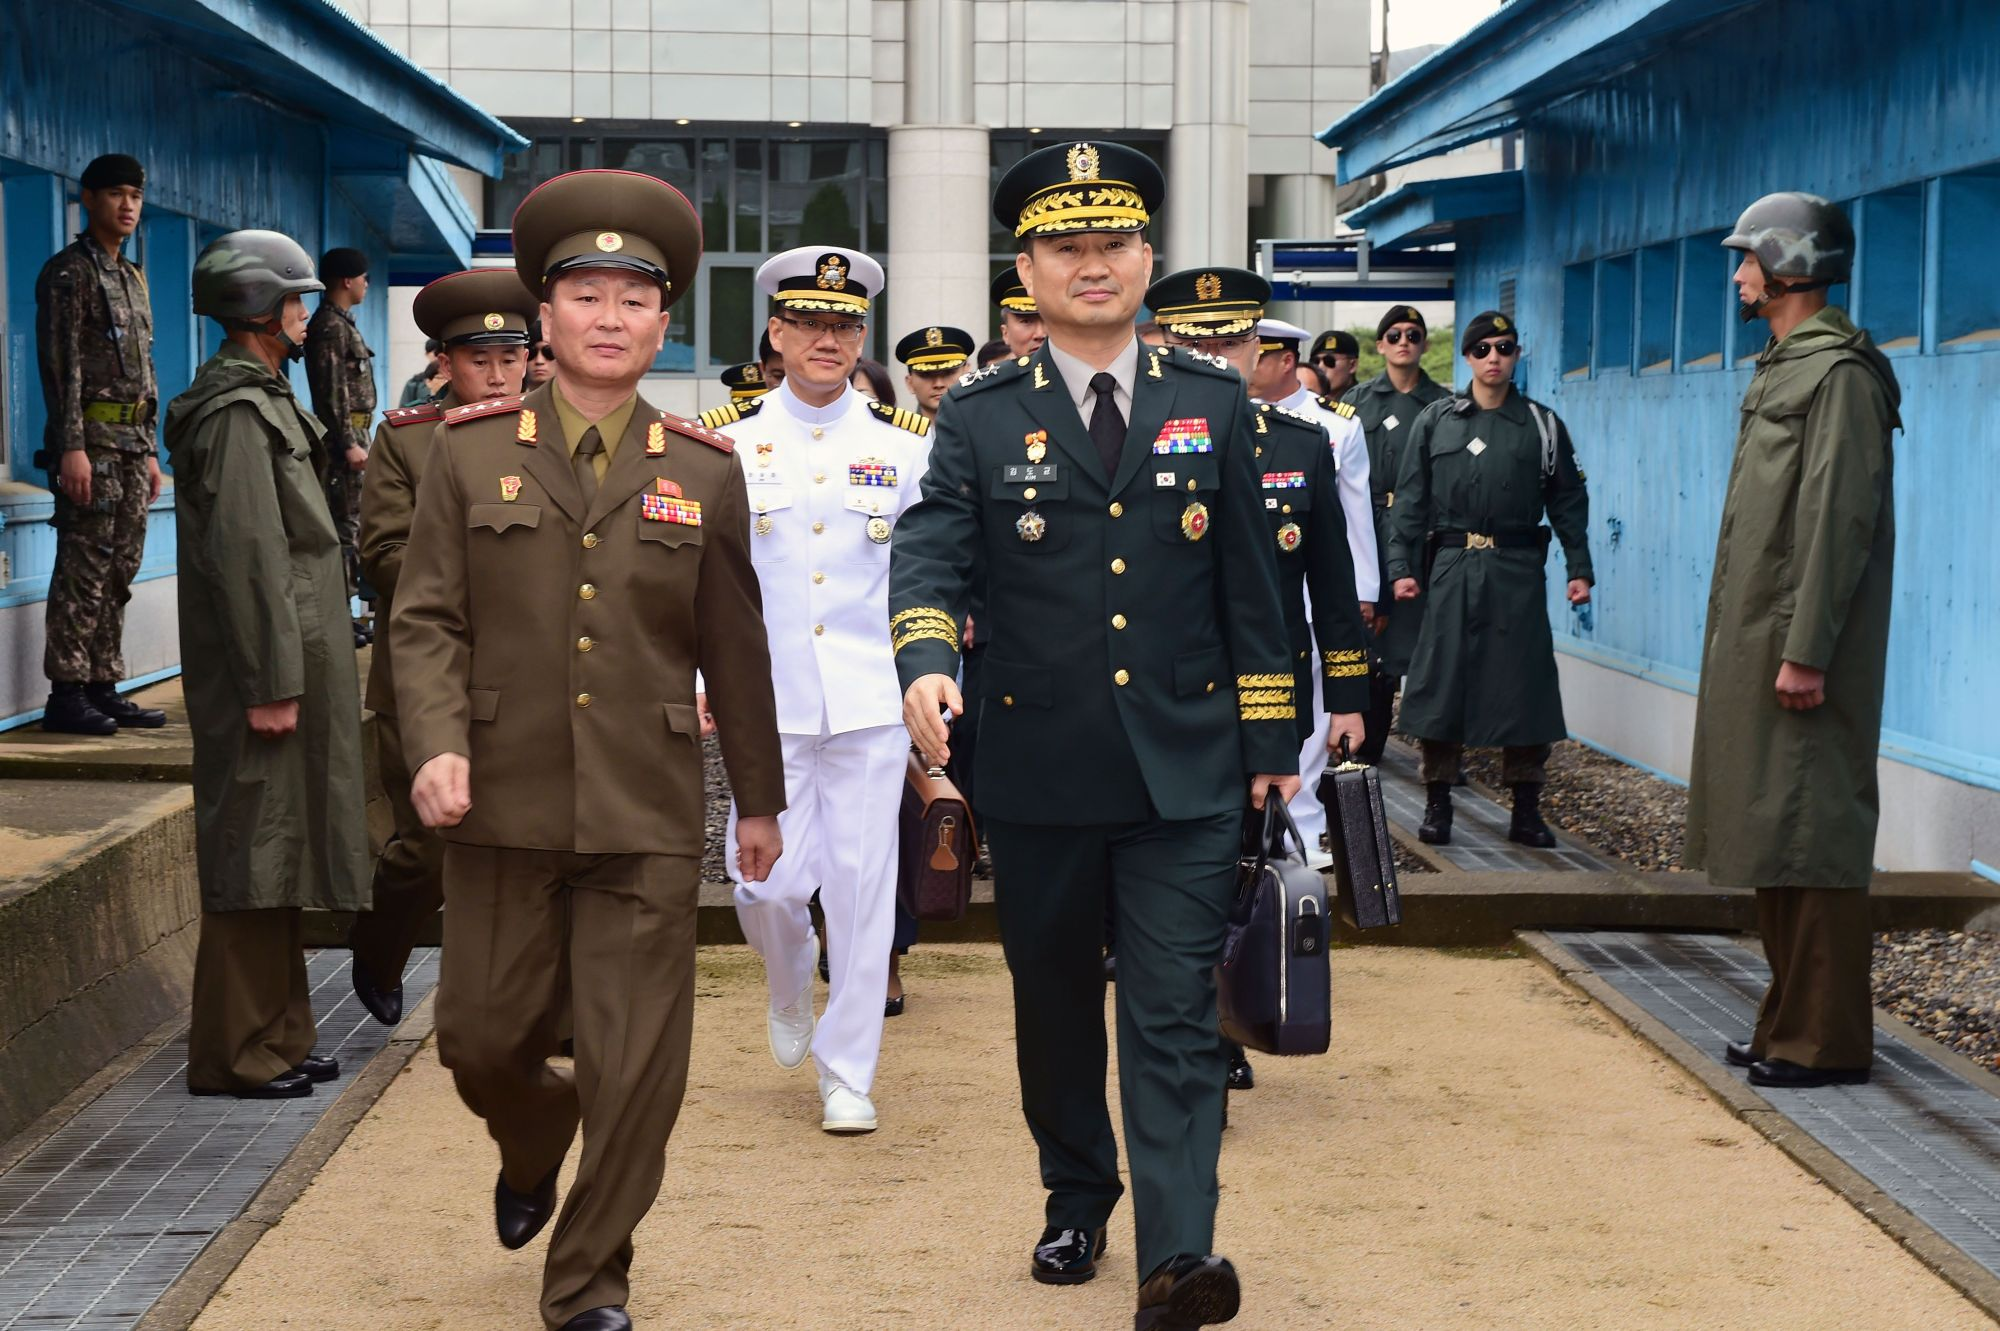 South Korea's chief delegate Major General Kim Do-gyun (center) is seen crossing the borderline to attend inter-Korea high-level military talks with a North Korean delegation at the truce village of Panmunjom in the Demilitarized Zone (DMZ) dividing the two Koreas on June 14, 2018. North and South Korea have agreed to hold more meetings throughout this month to carry out agreements reached between their leaders at the April summit. | AFP-JIJI